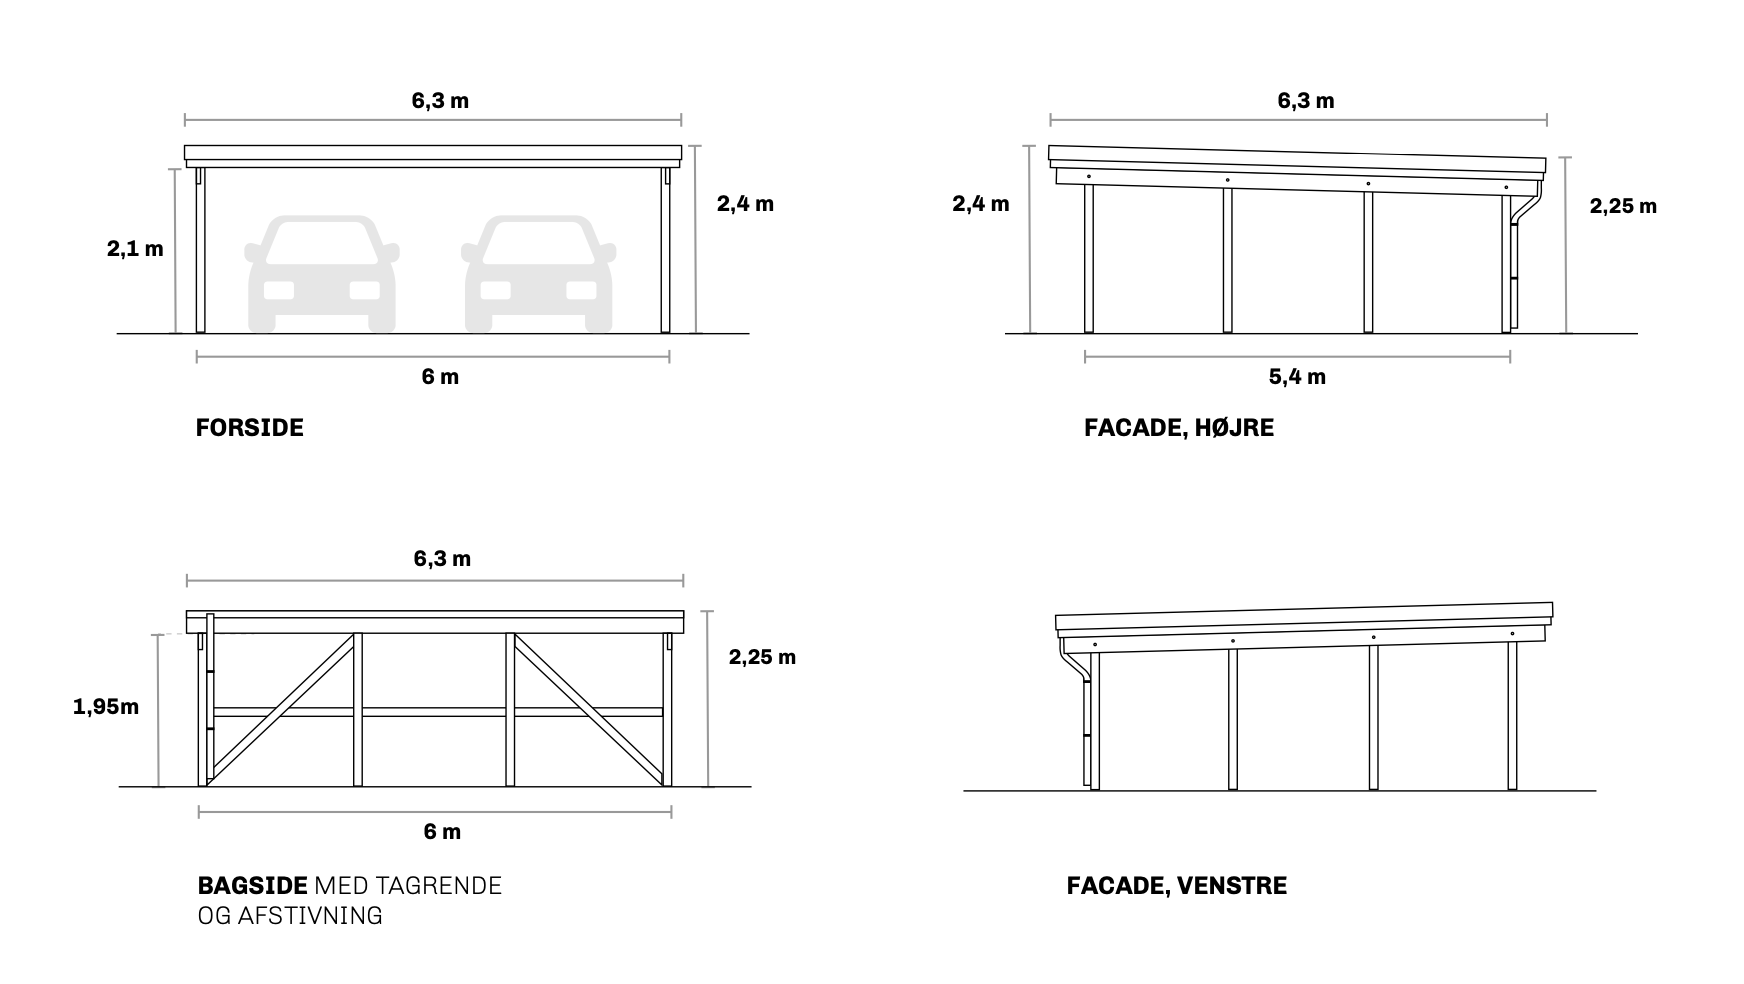 Designing And Building A Double Carport For Our House Signe Roswall